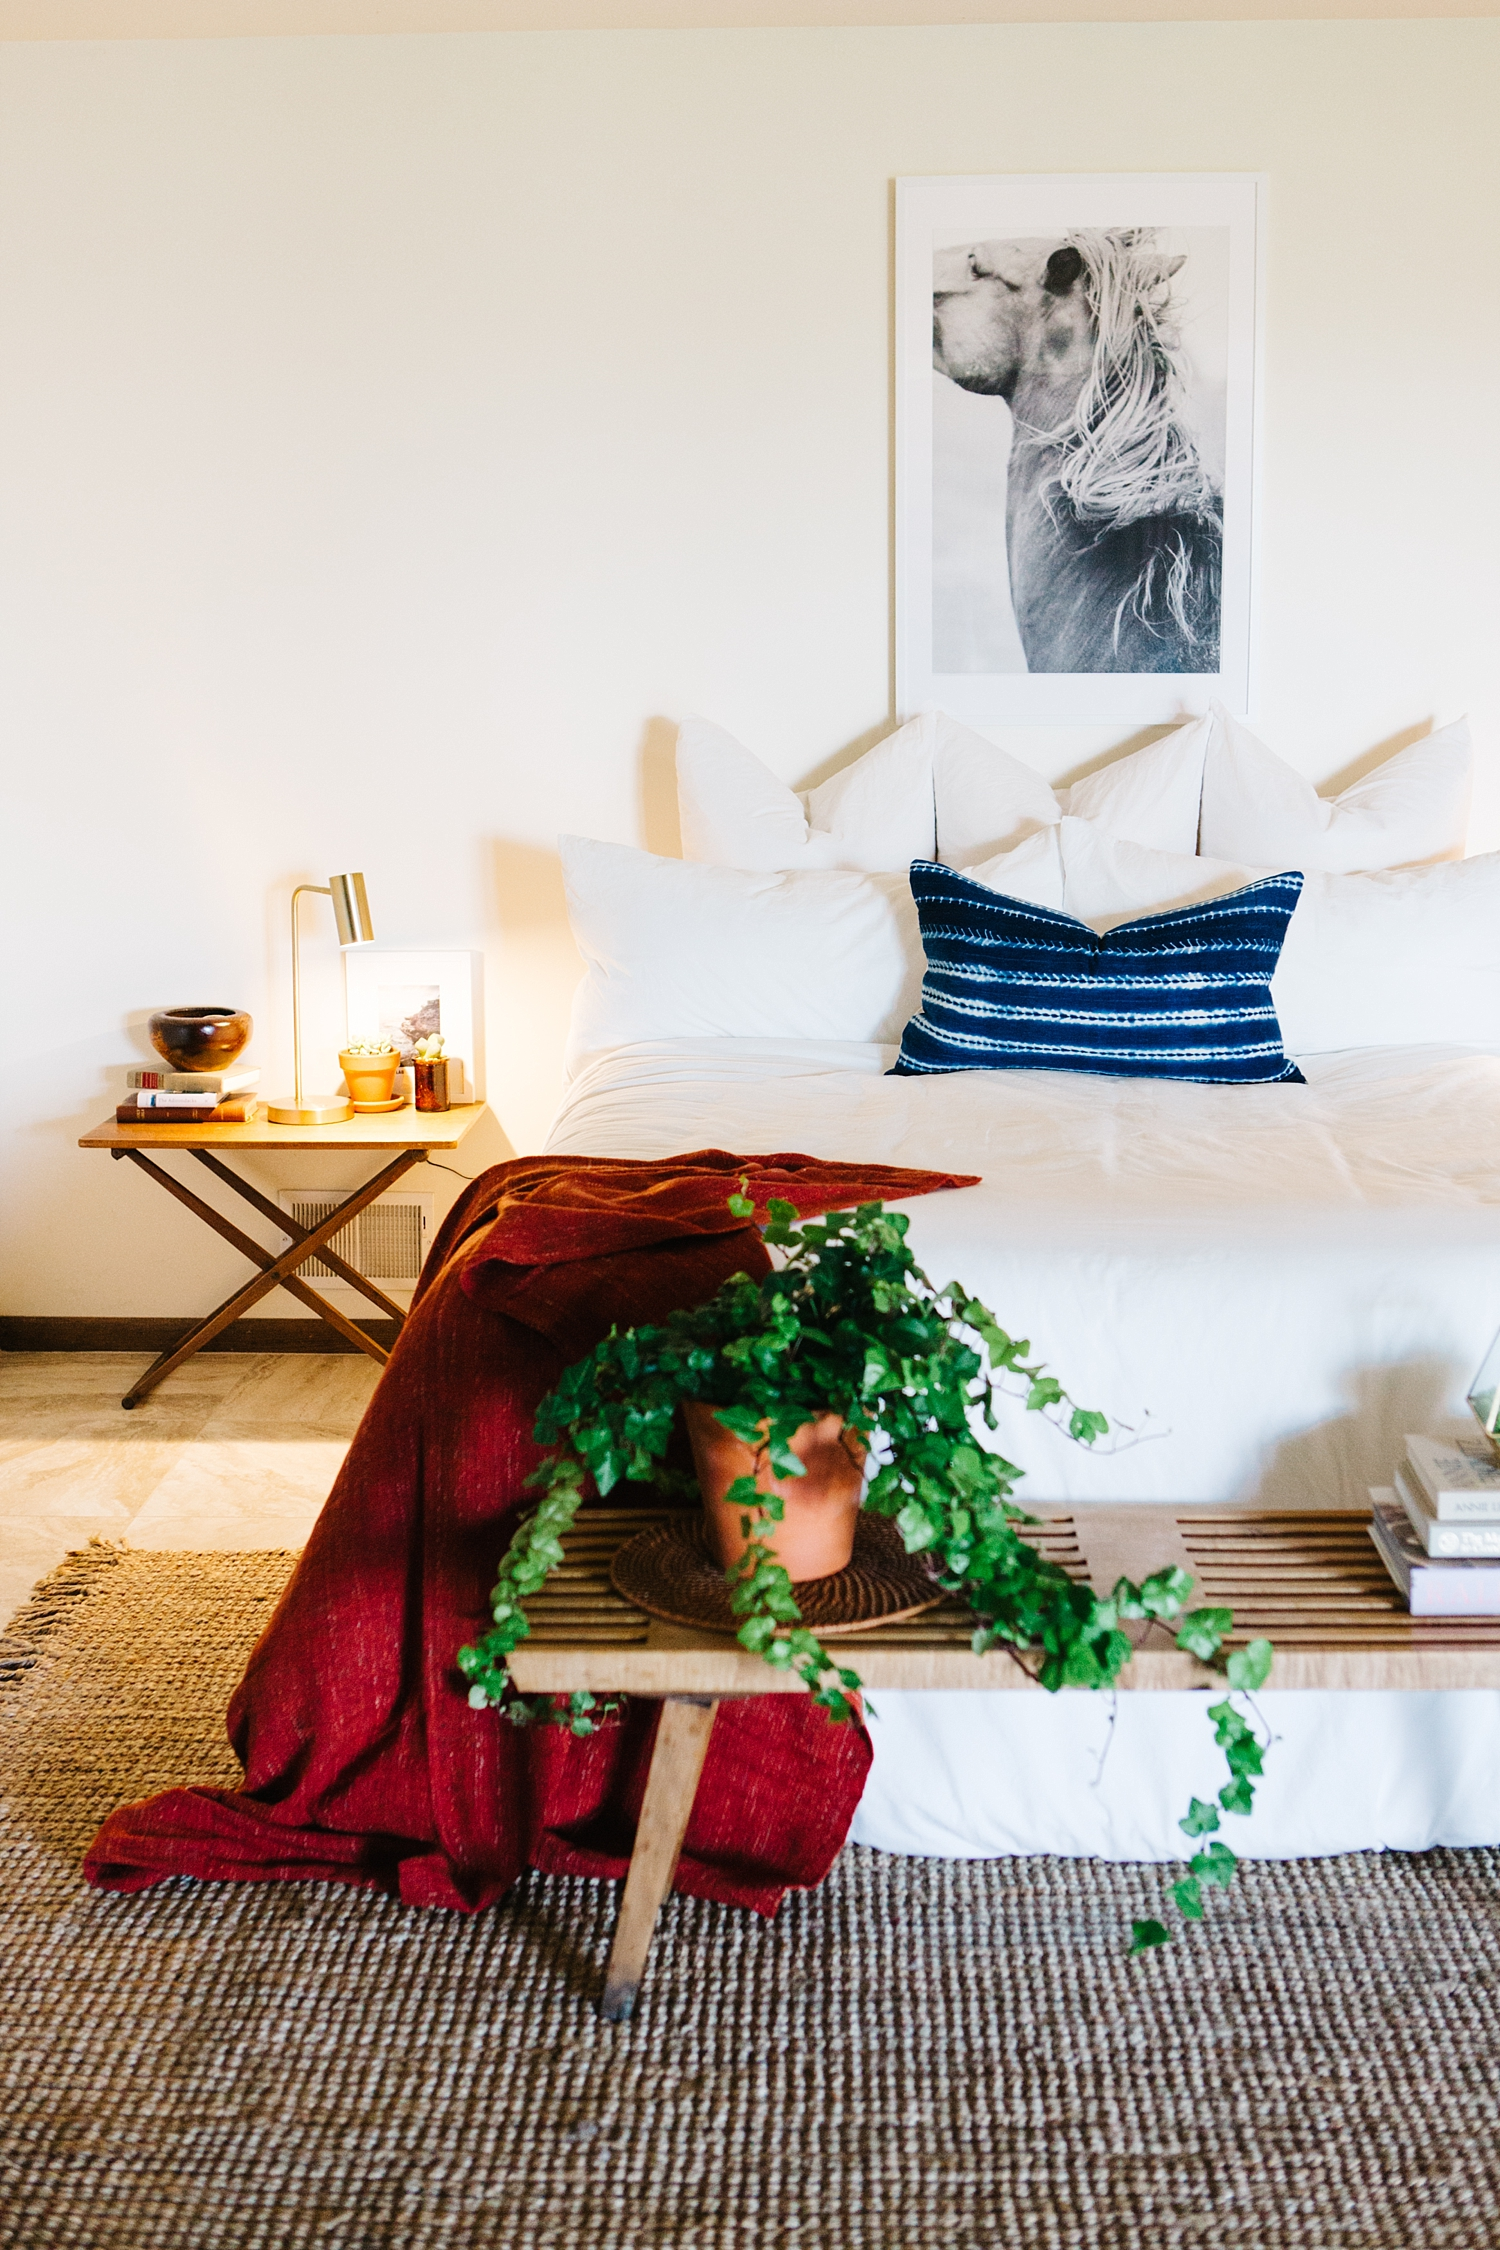 The monstrous sprawling ivy combined with the throw on the bed provide a great pop of color. The wonderful thing about having a white space is the ease in which color adds both warmth and homeyness.